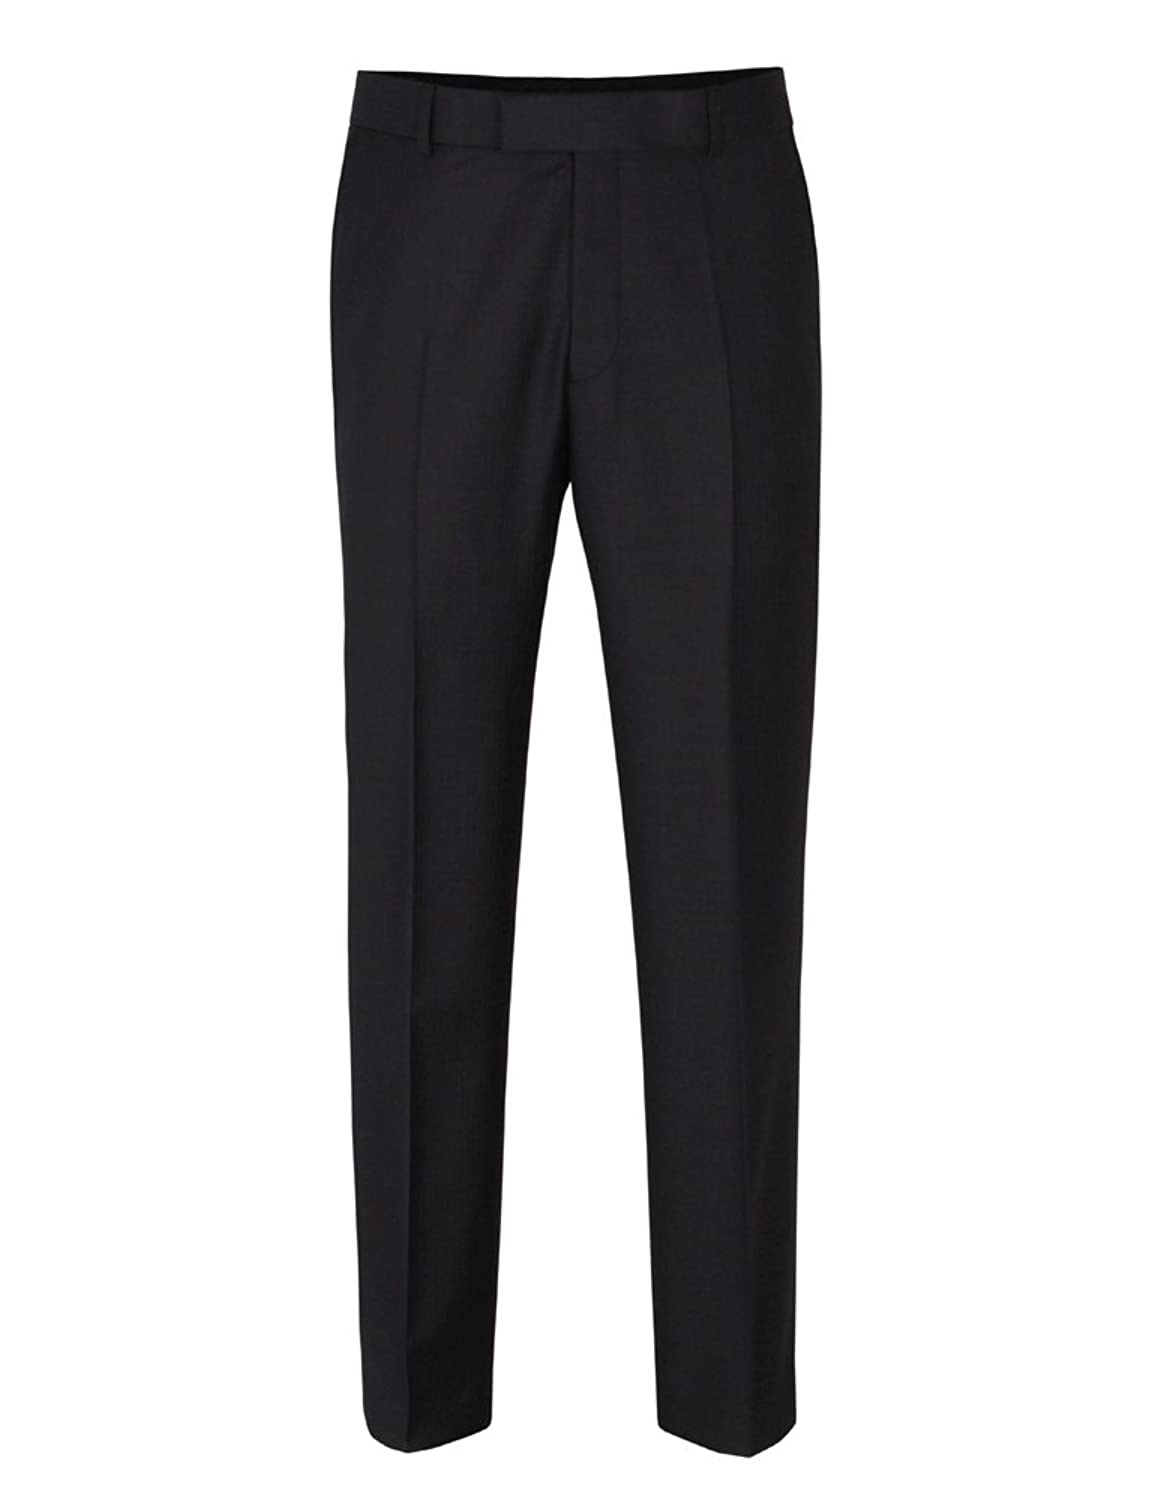 Suit Direct Racing Green Herringbone Trouser - Classic Regular Fit Mixer Trouser